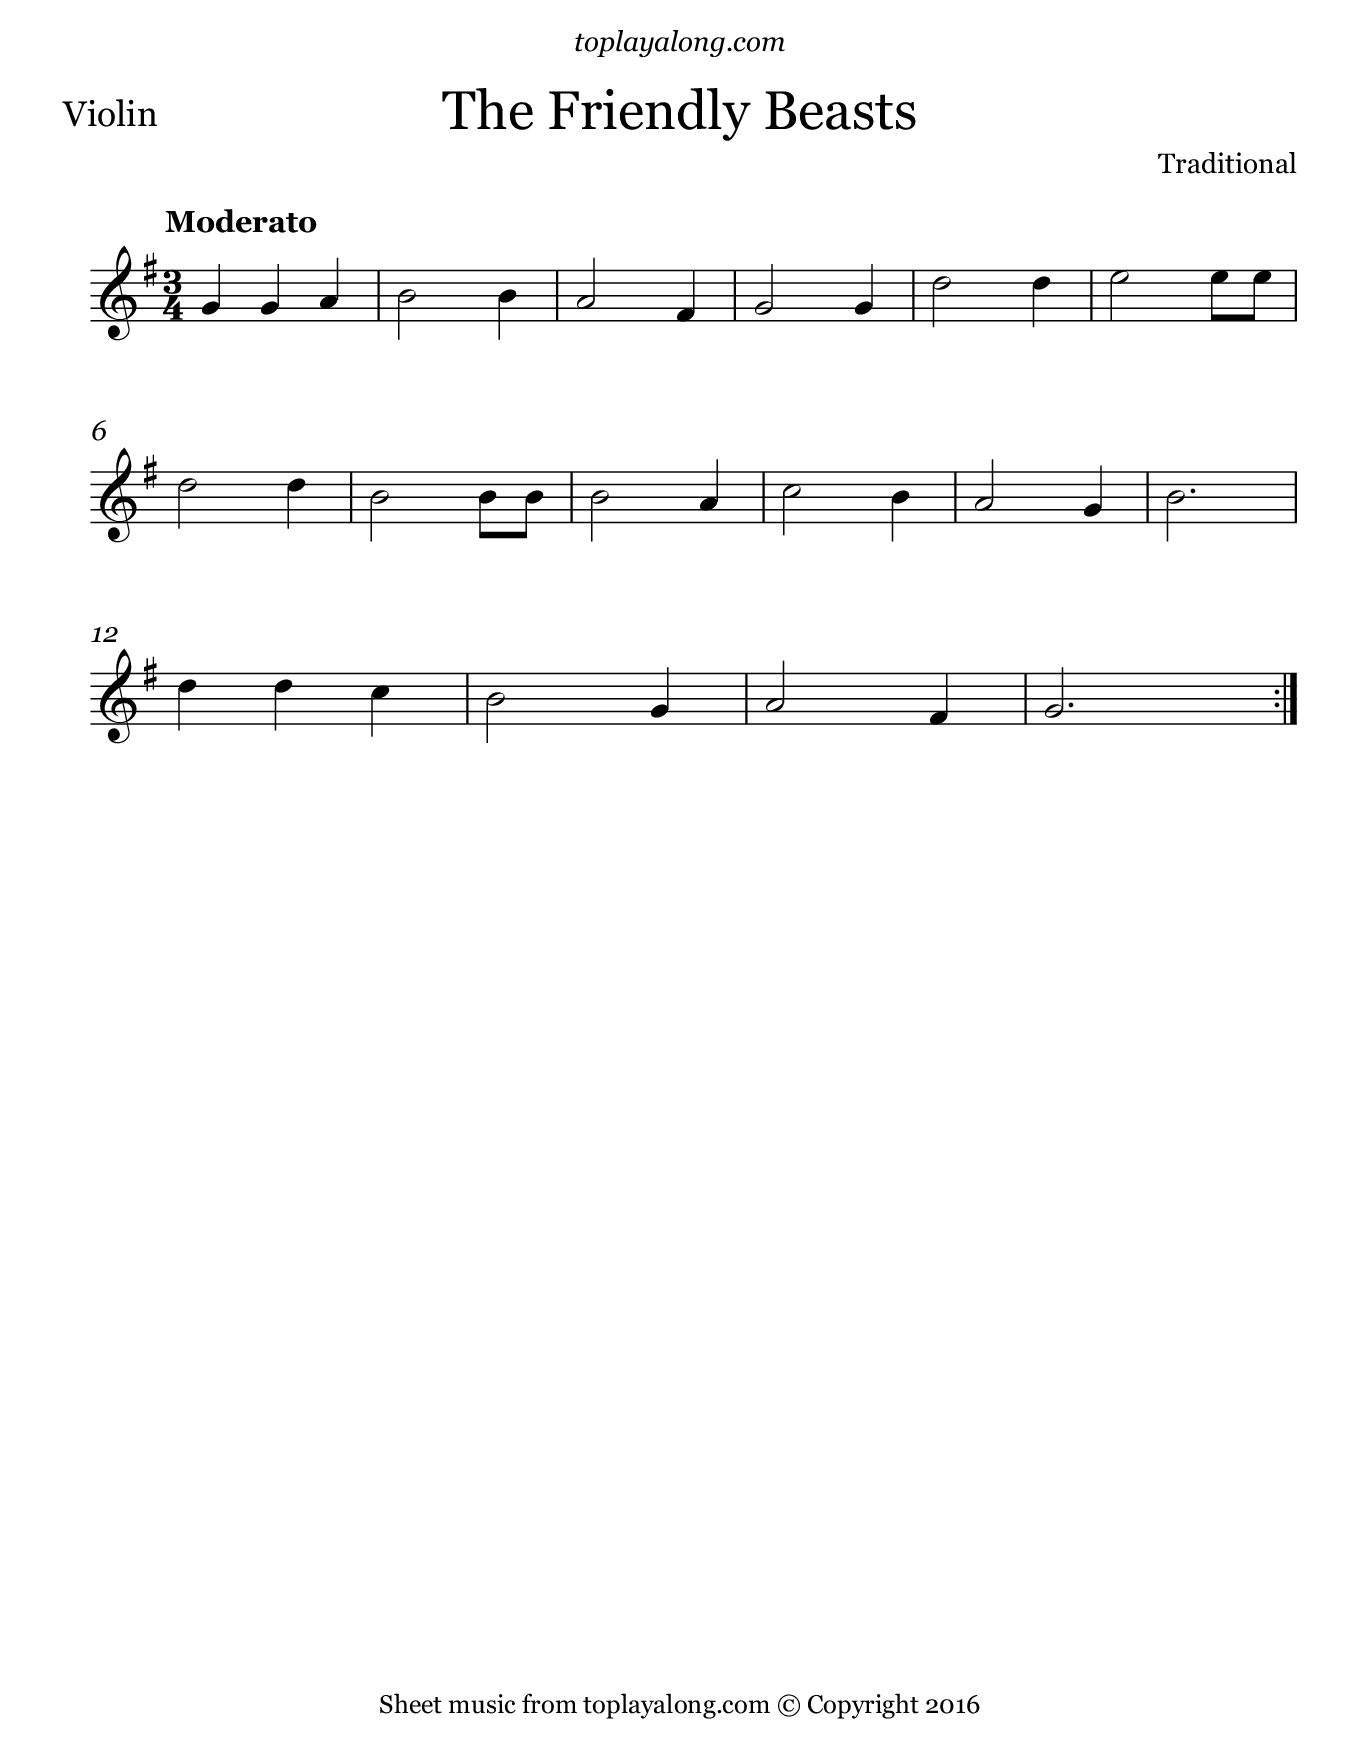 The Friendly Beasts. Sheet music for Violin, page 1.